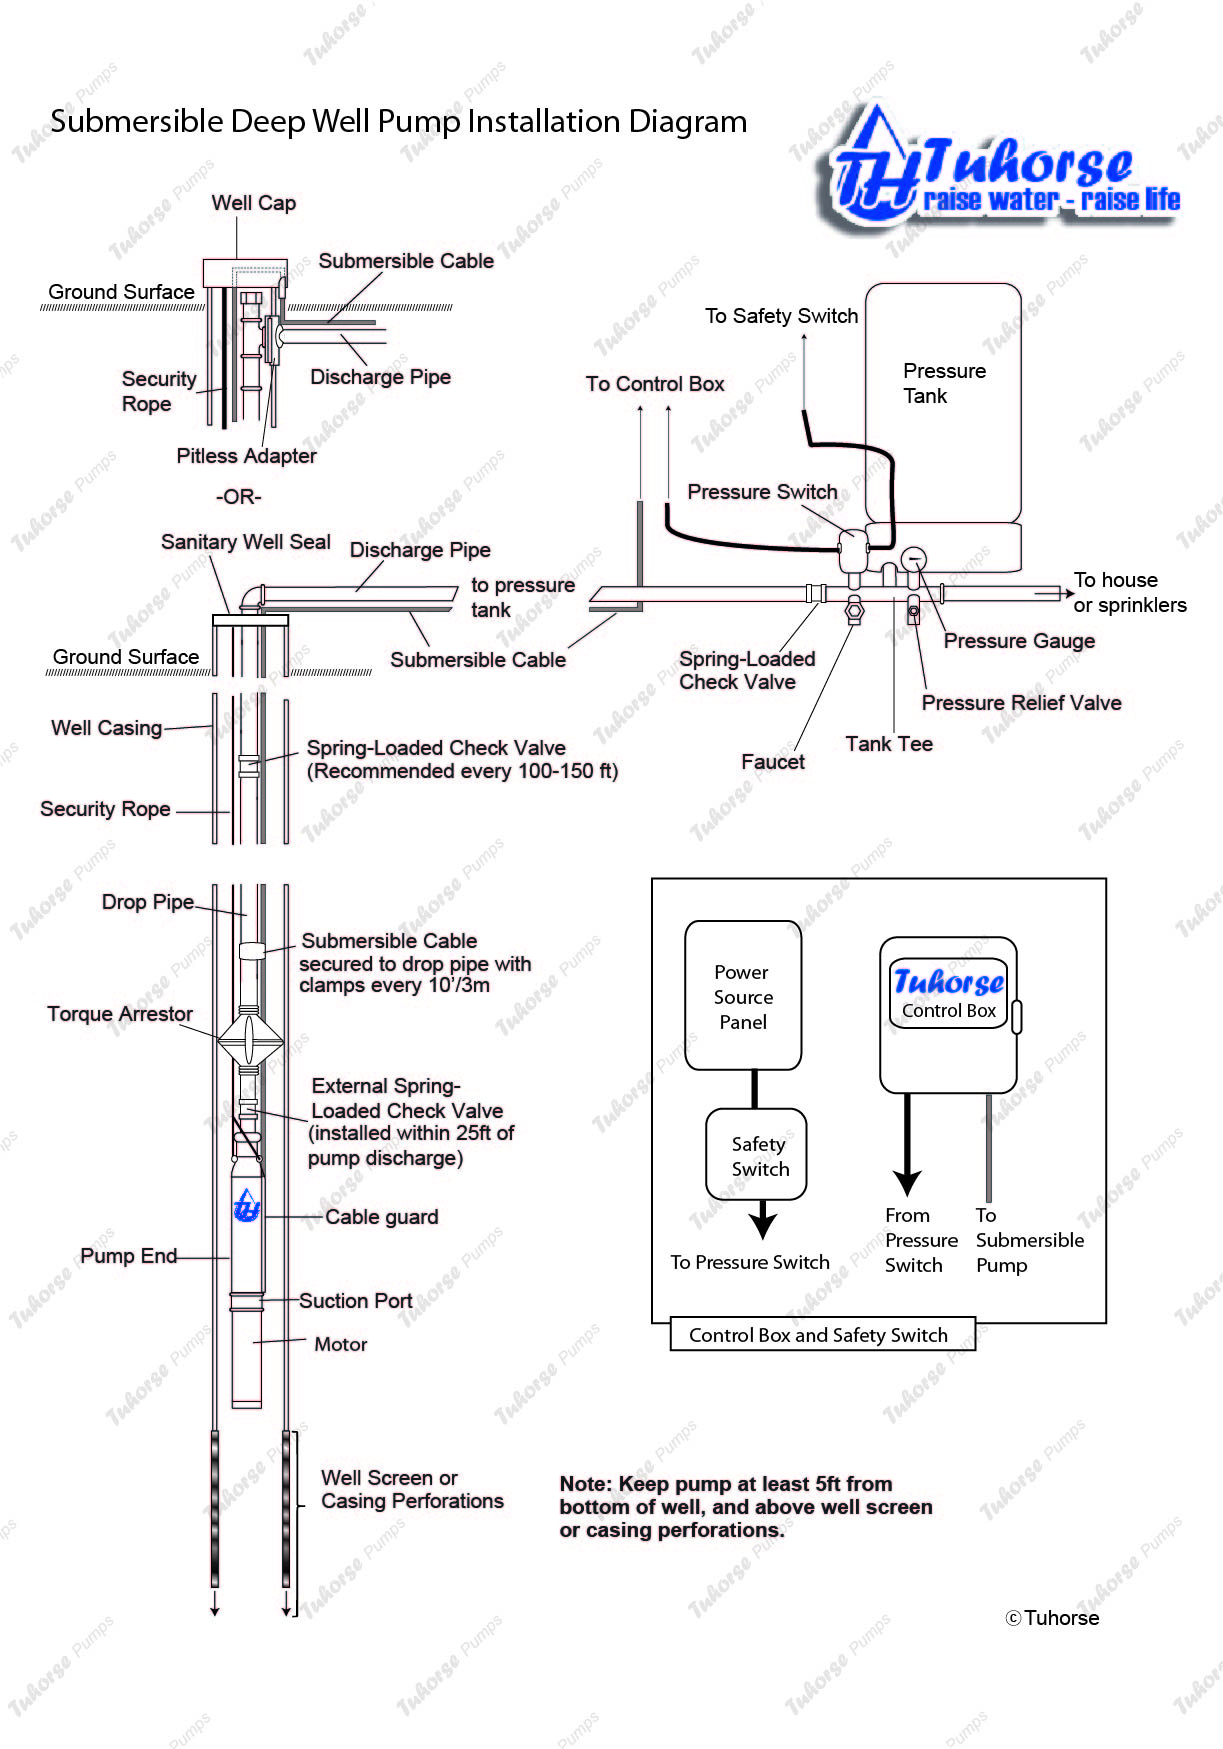 watermarkedinstallationdiagram4 pump installation 4 wire submersible pump wiring diagram at mifinder.co